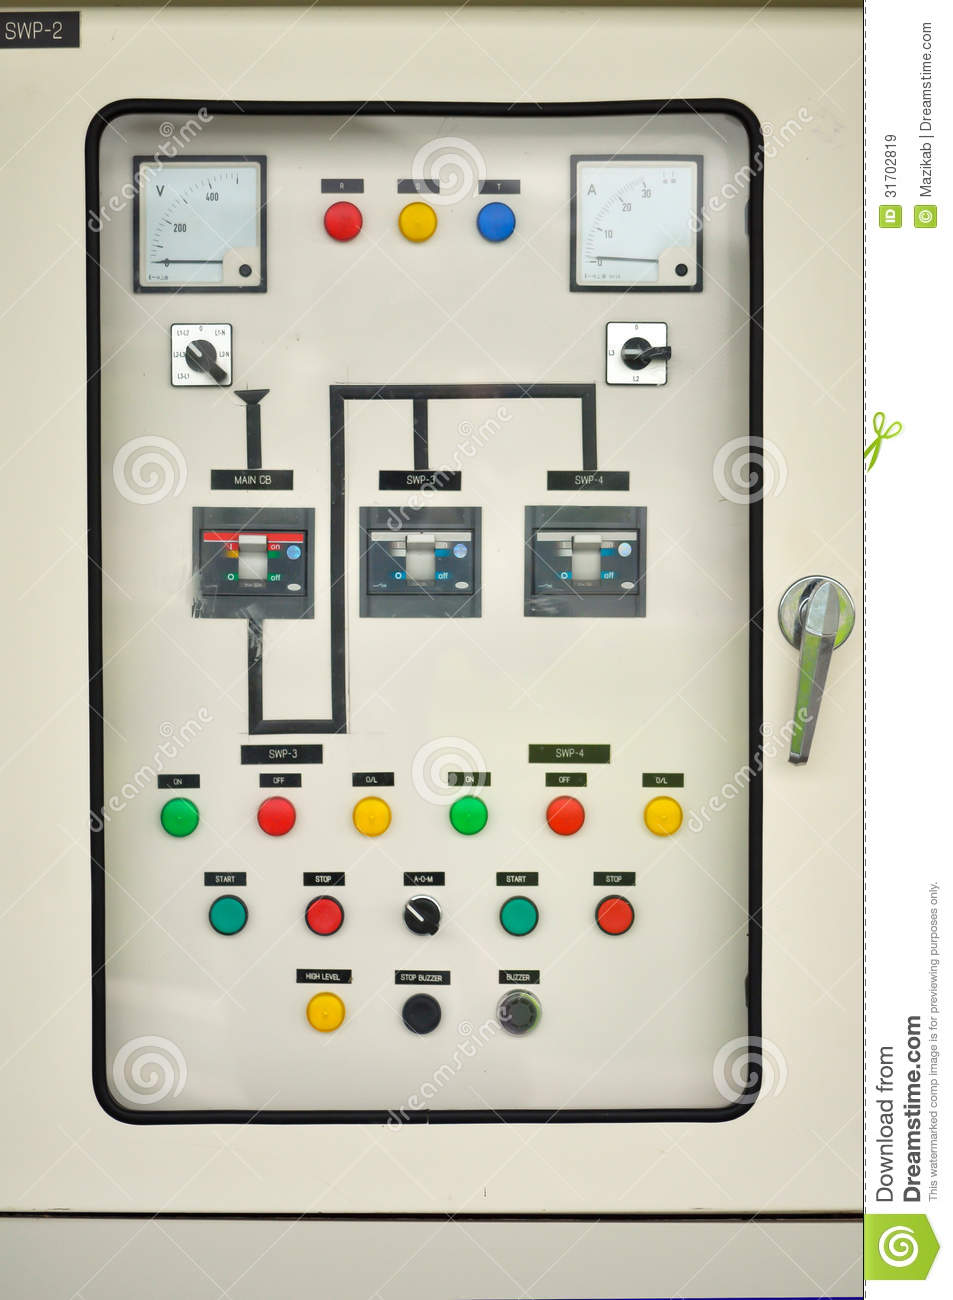 hight resolution of electric control system in an office building